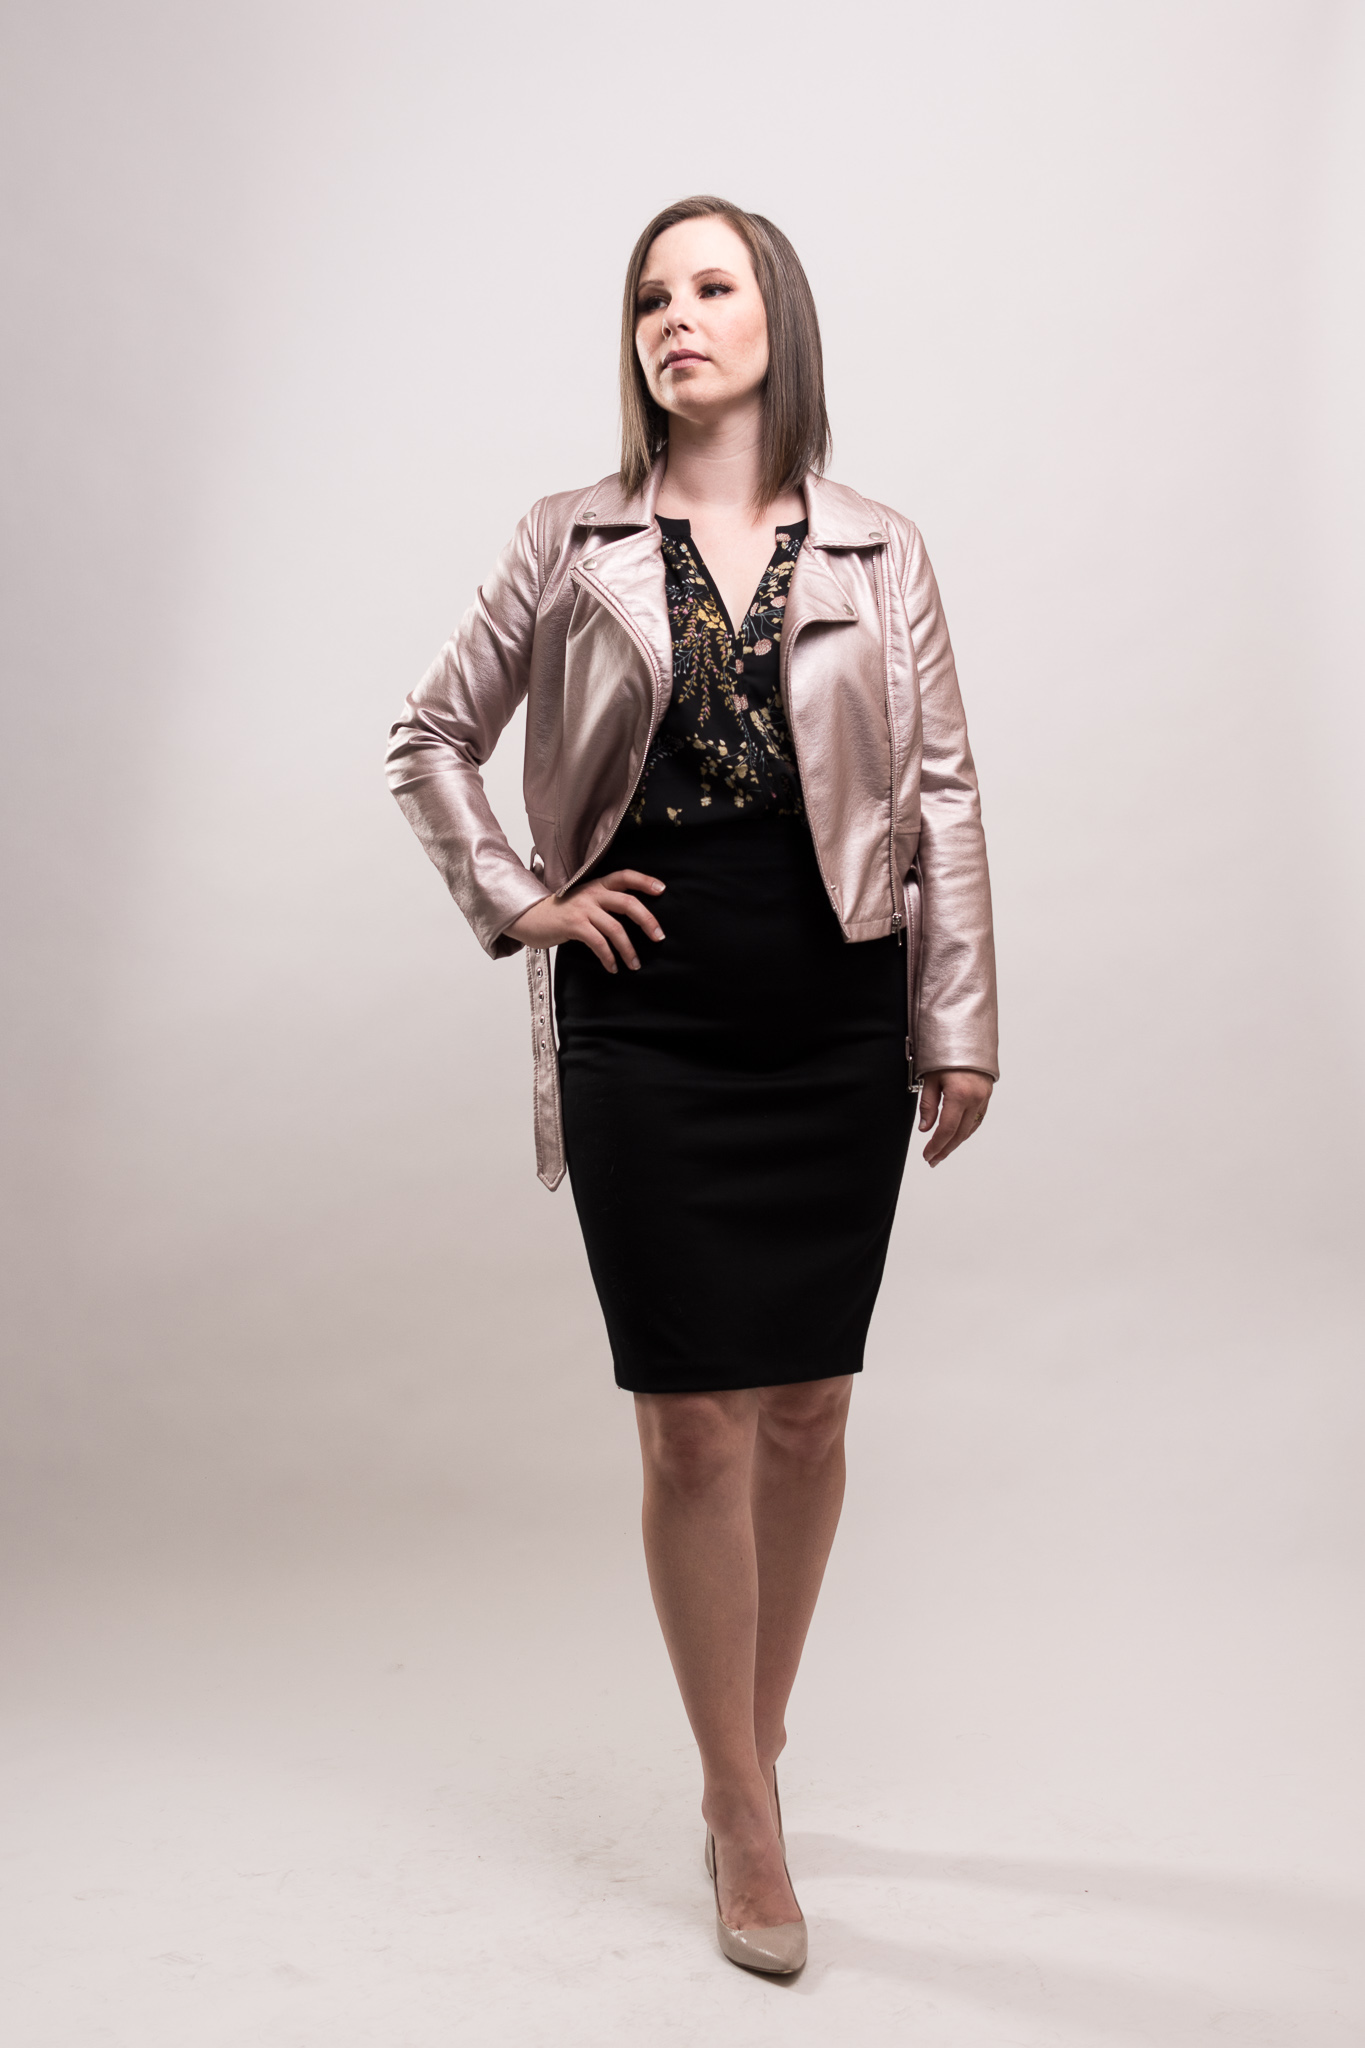 Jessica Pierre'auguste is styled by Raquel Greer Gordian for a business casual occasion in Austin, Texas.